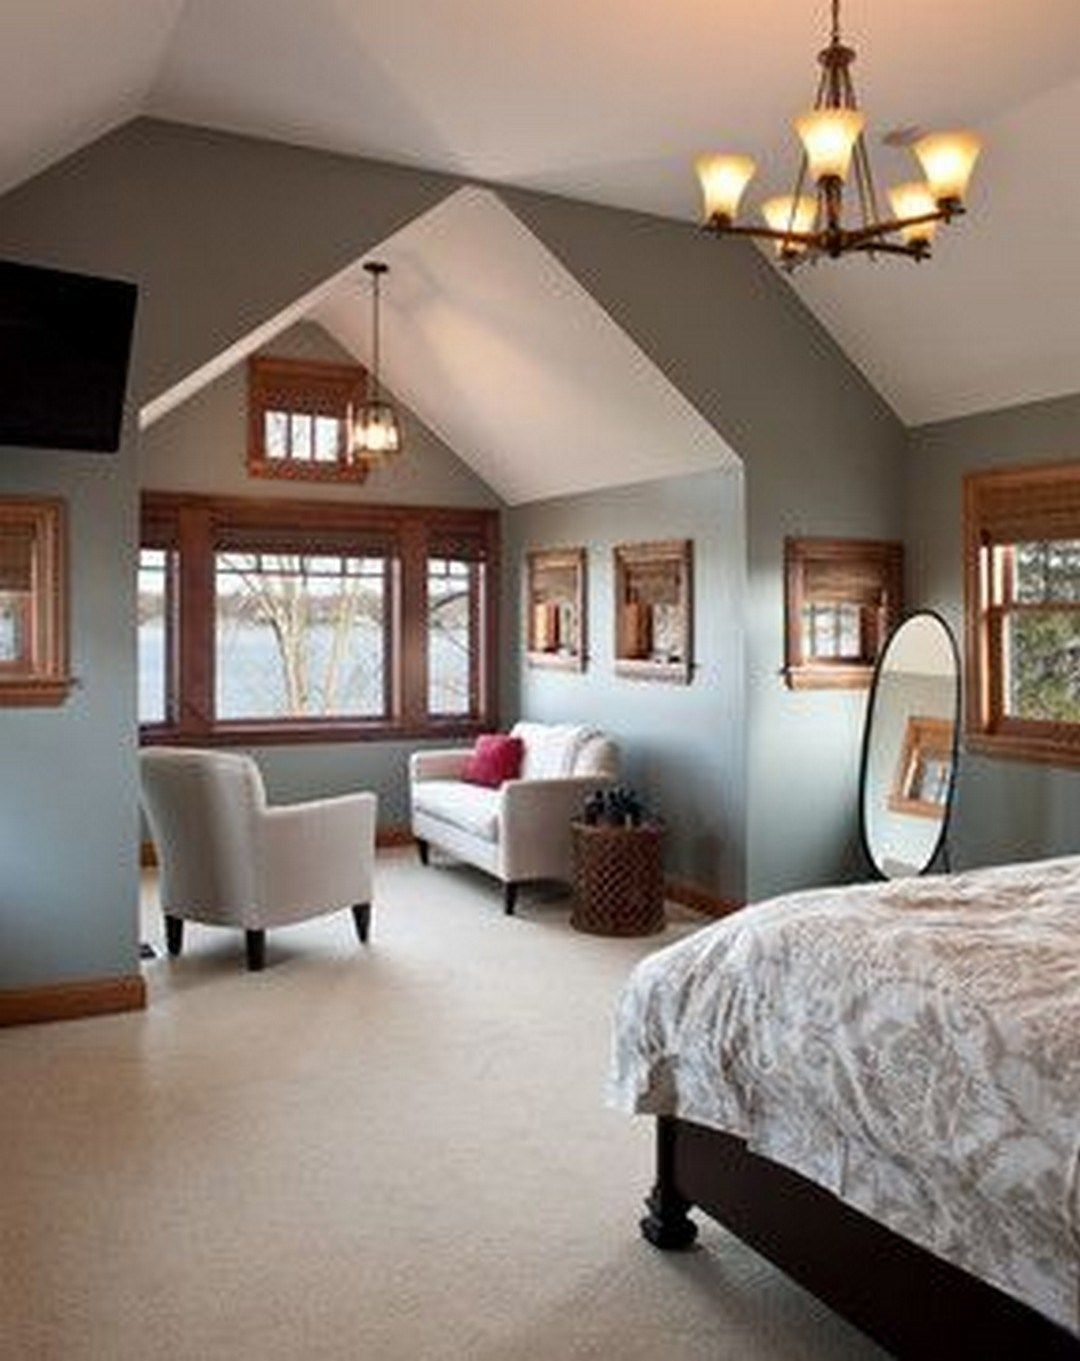 Awesome Attic Master Bedroom With Wood Furniture (42 ...